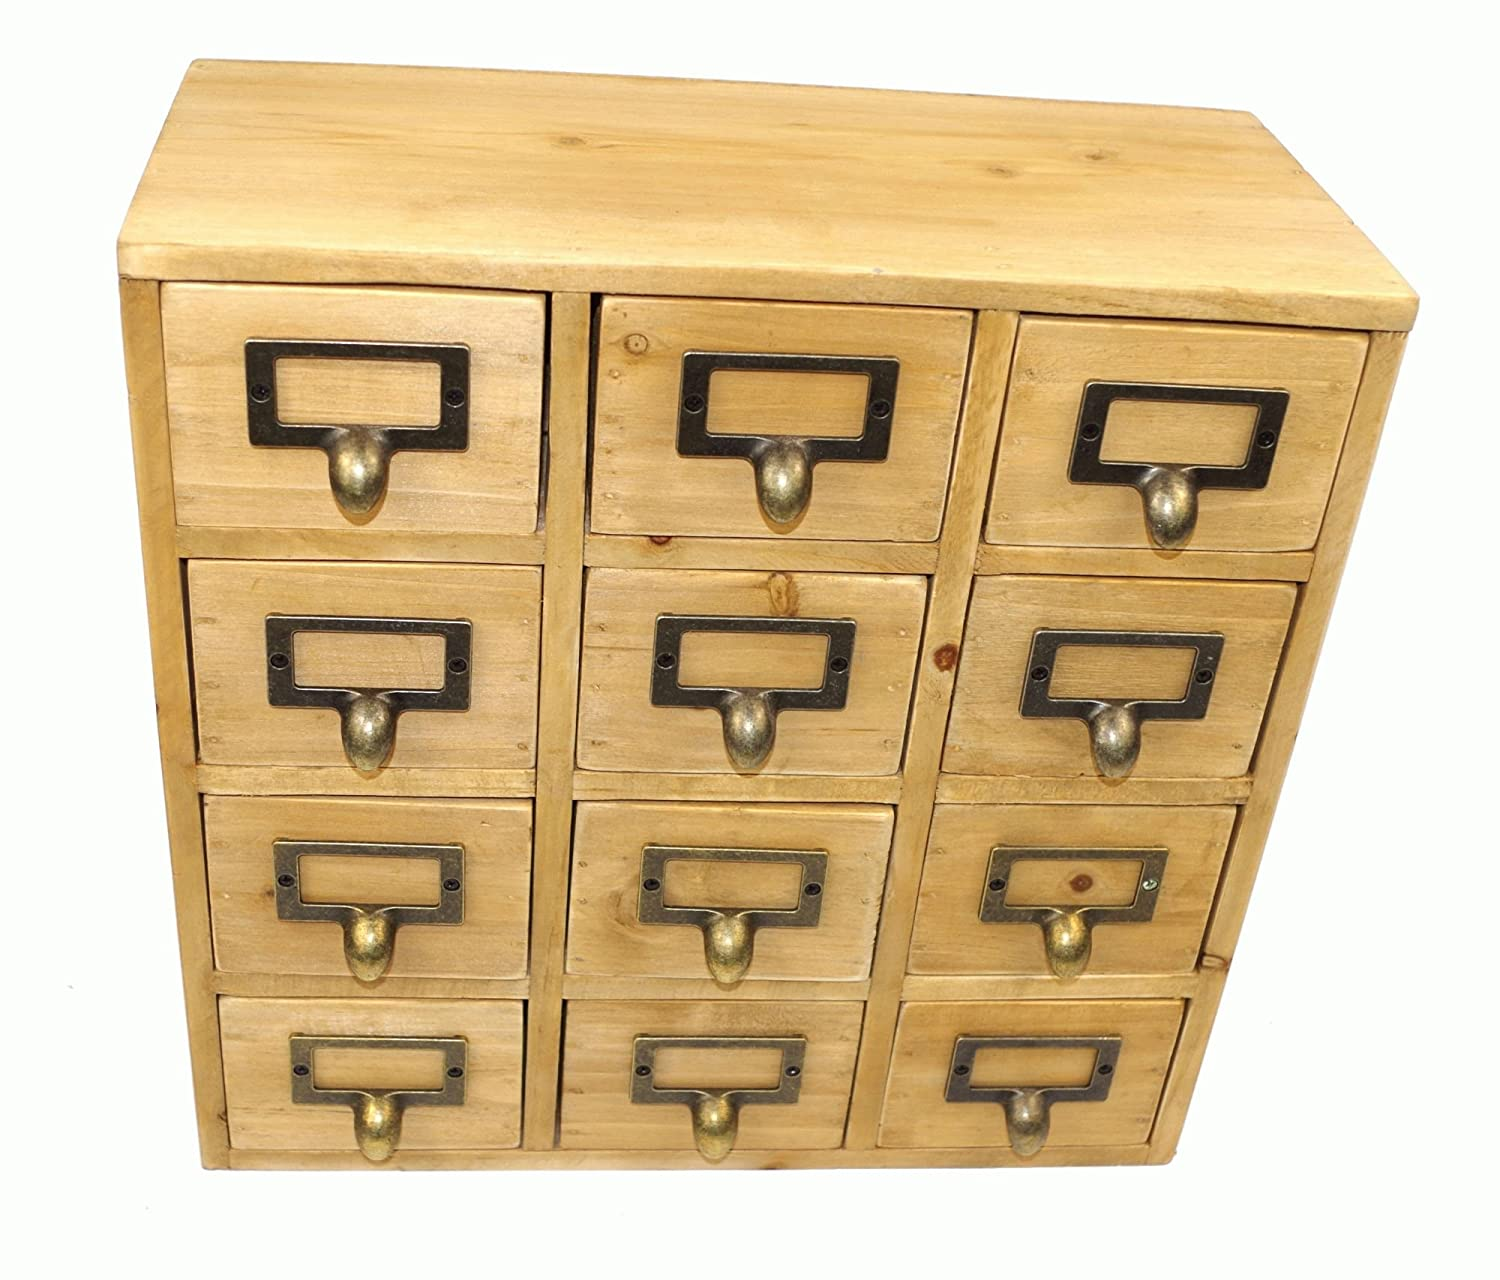 Geko 35 X 15 X 34 Cm Mini Trinket Desk Organiser Trinket Storage Drawers,  Wooden 12 Drawer Mini Chest With Metal Handles: Amazon.co.uk: Kitchen U0026 Home